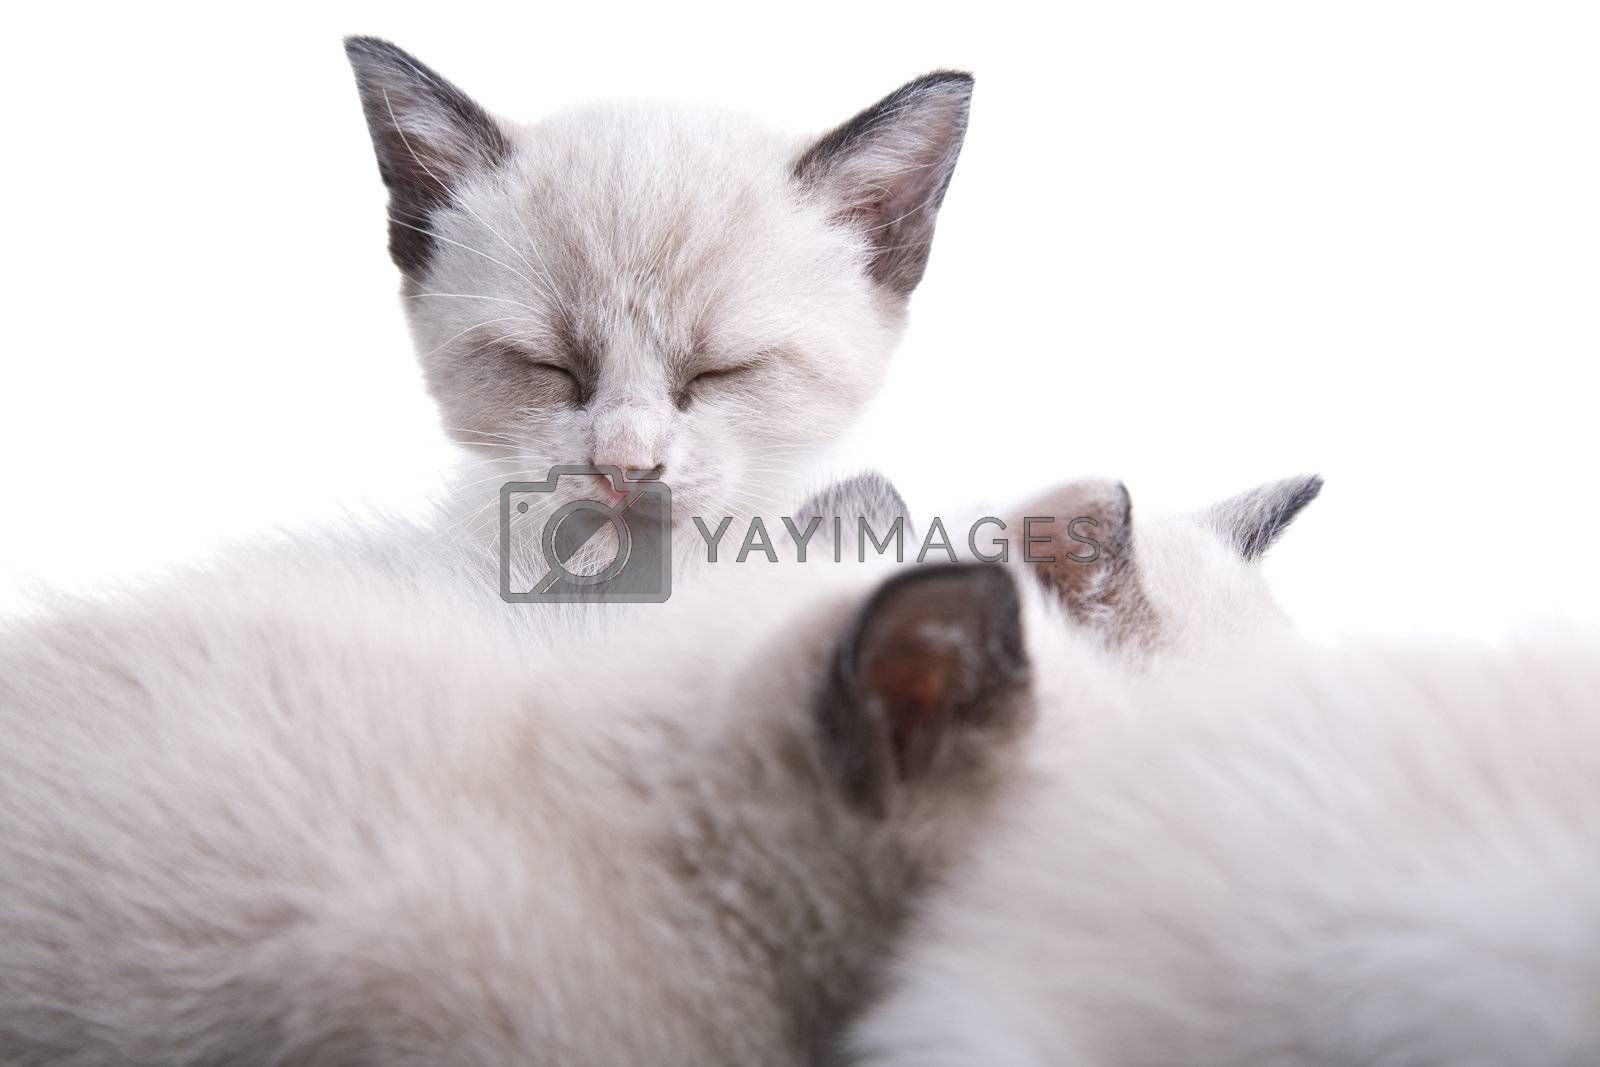 Adorable baby kittens sleeping together. Isolated on white.